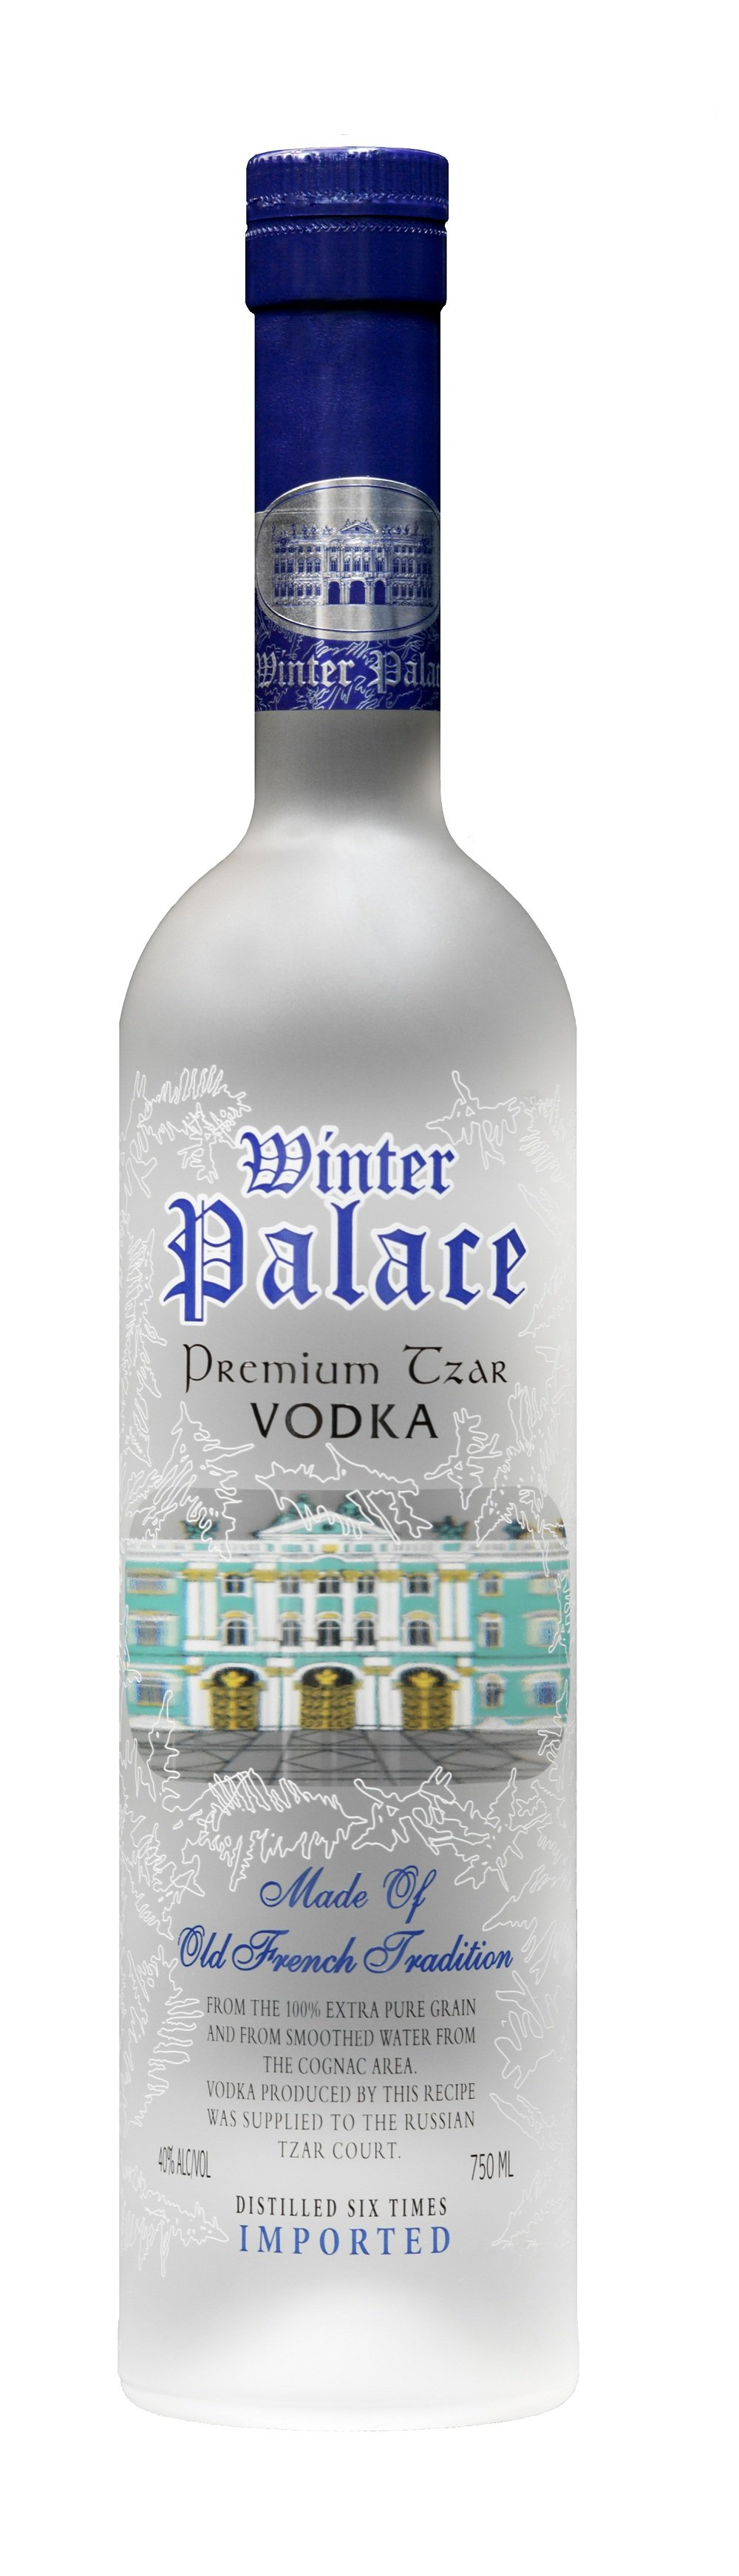 Winter Palace Premium Tzar Vodka